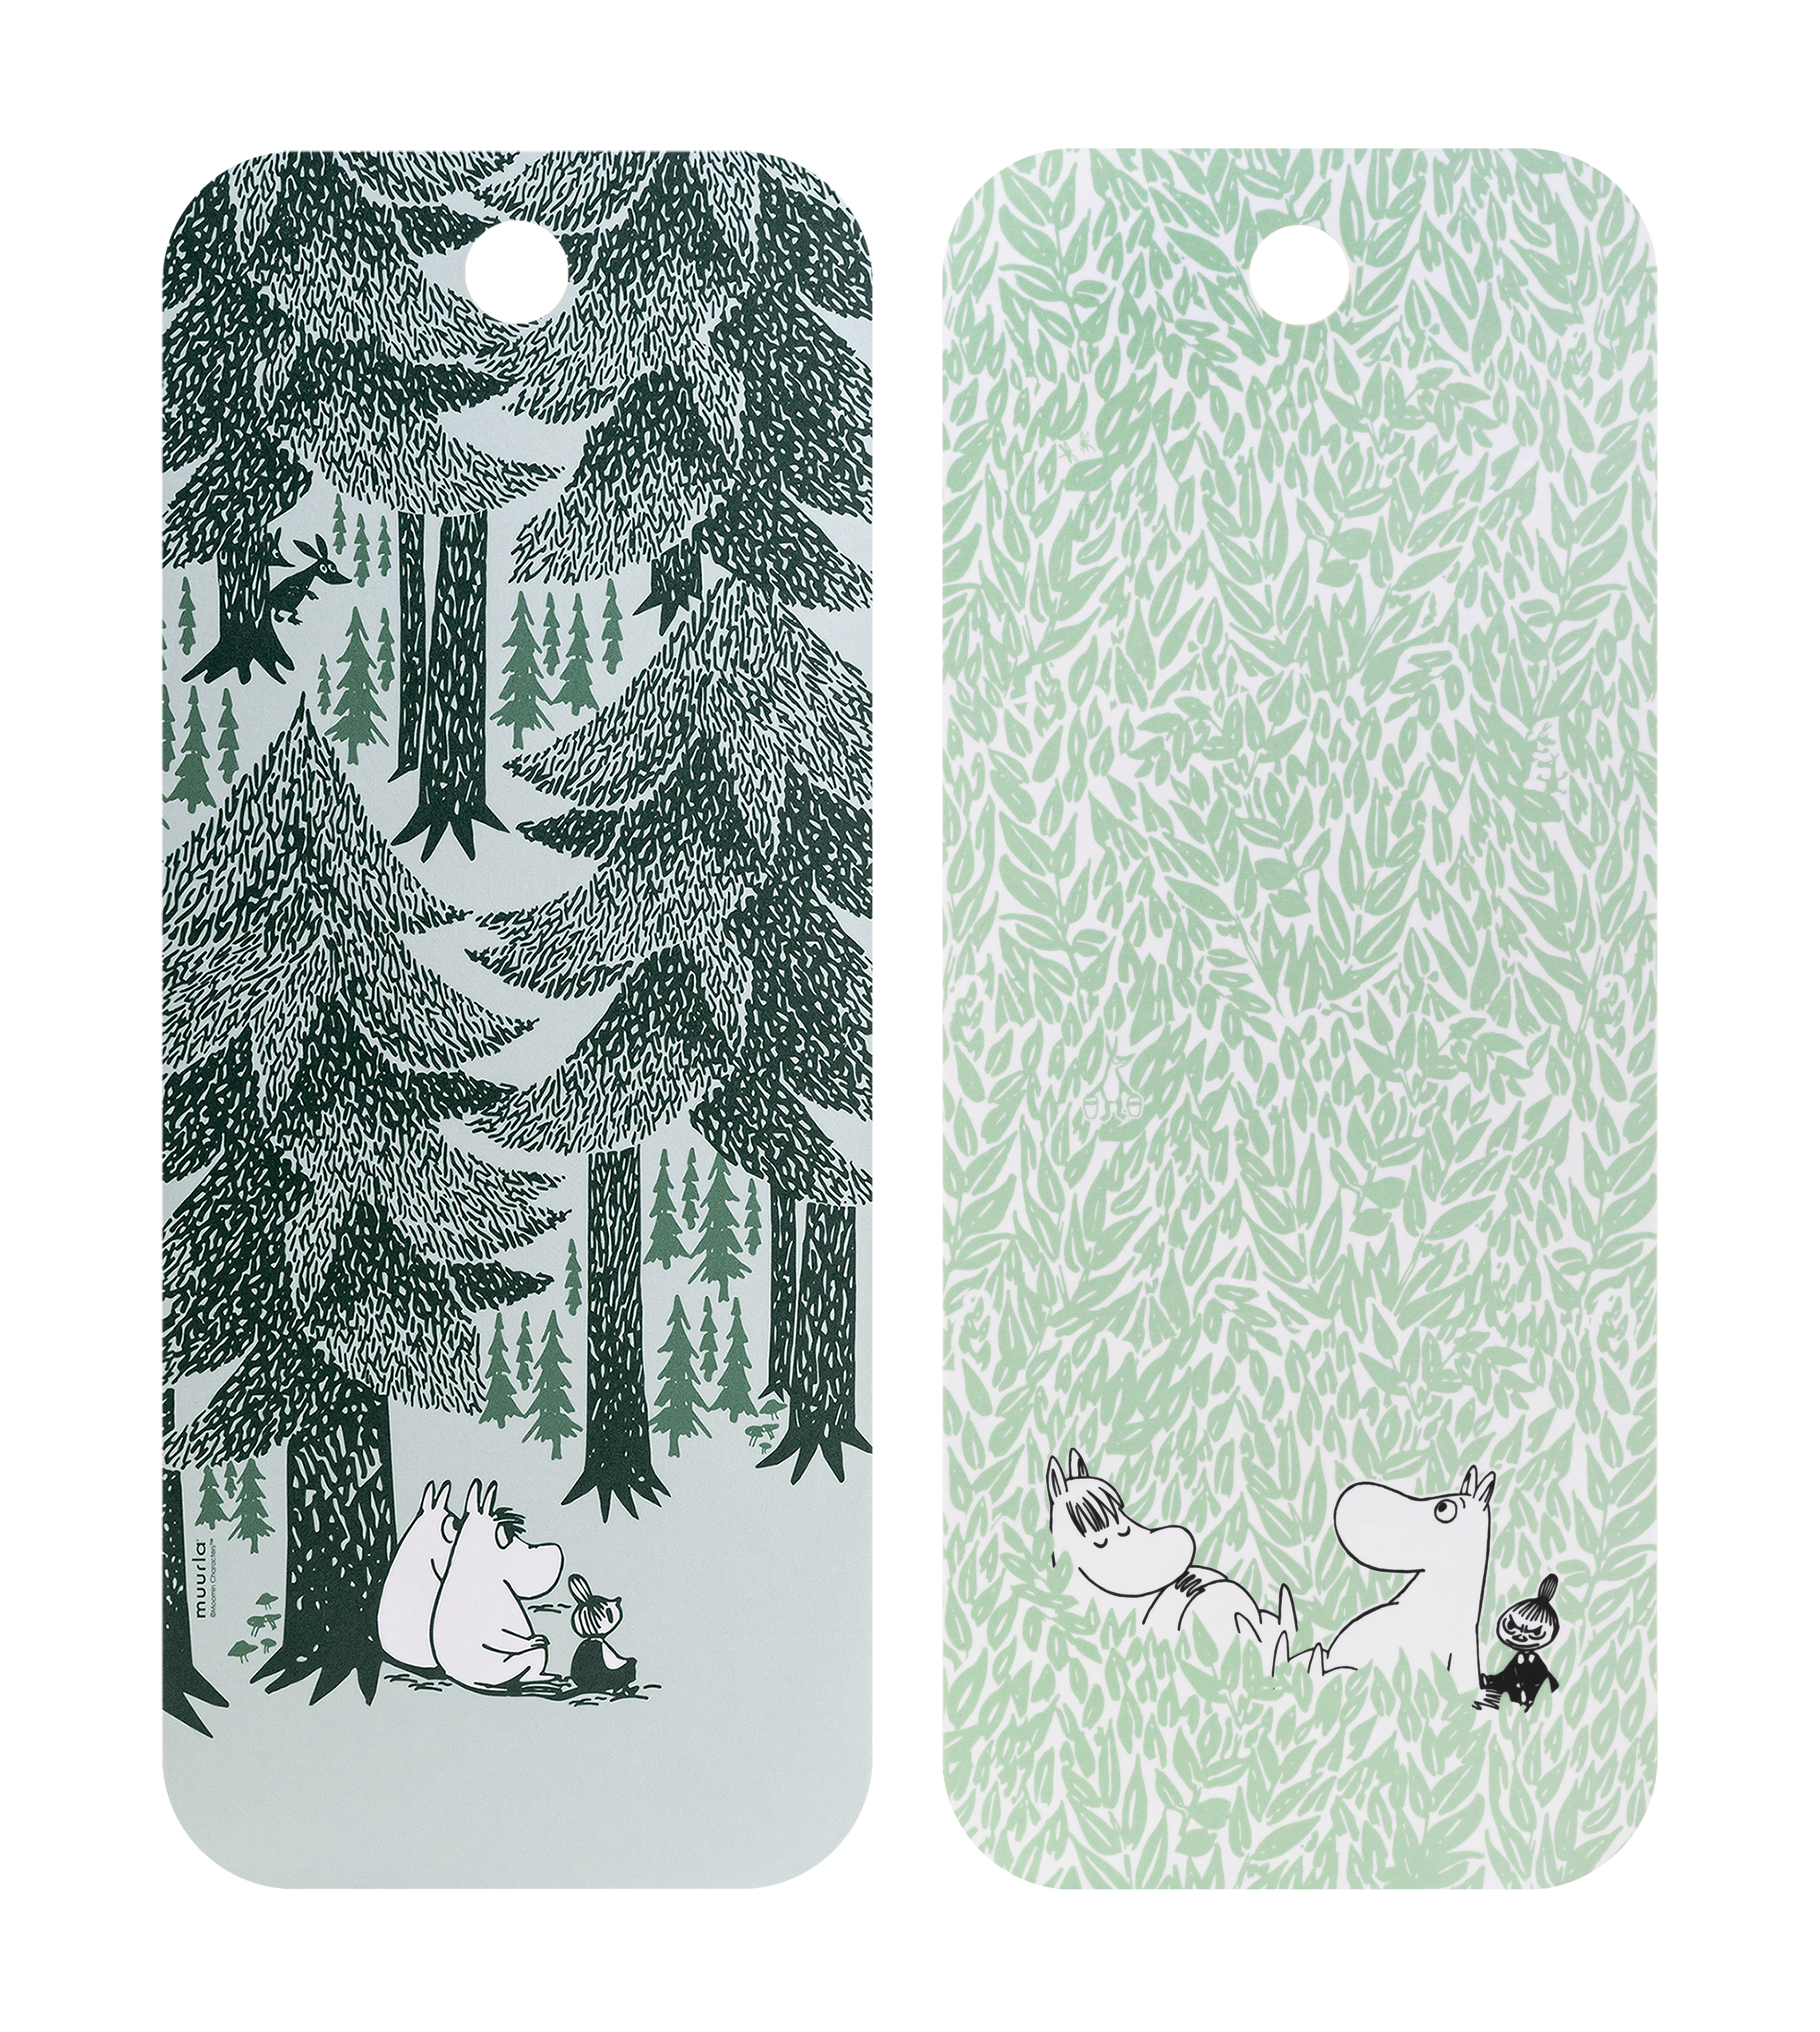 Moomin by Muurla - In the depth of the forest - Chop & Serve board 18x44cm